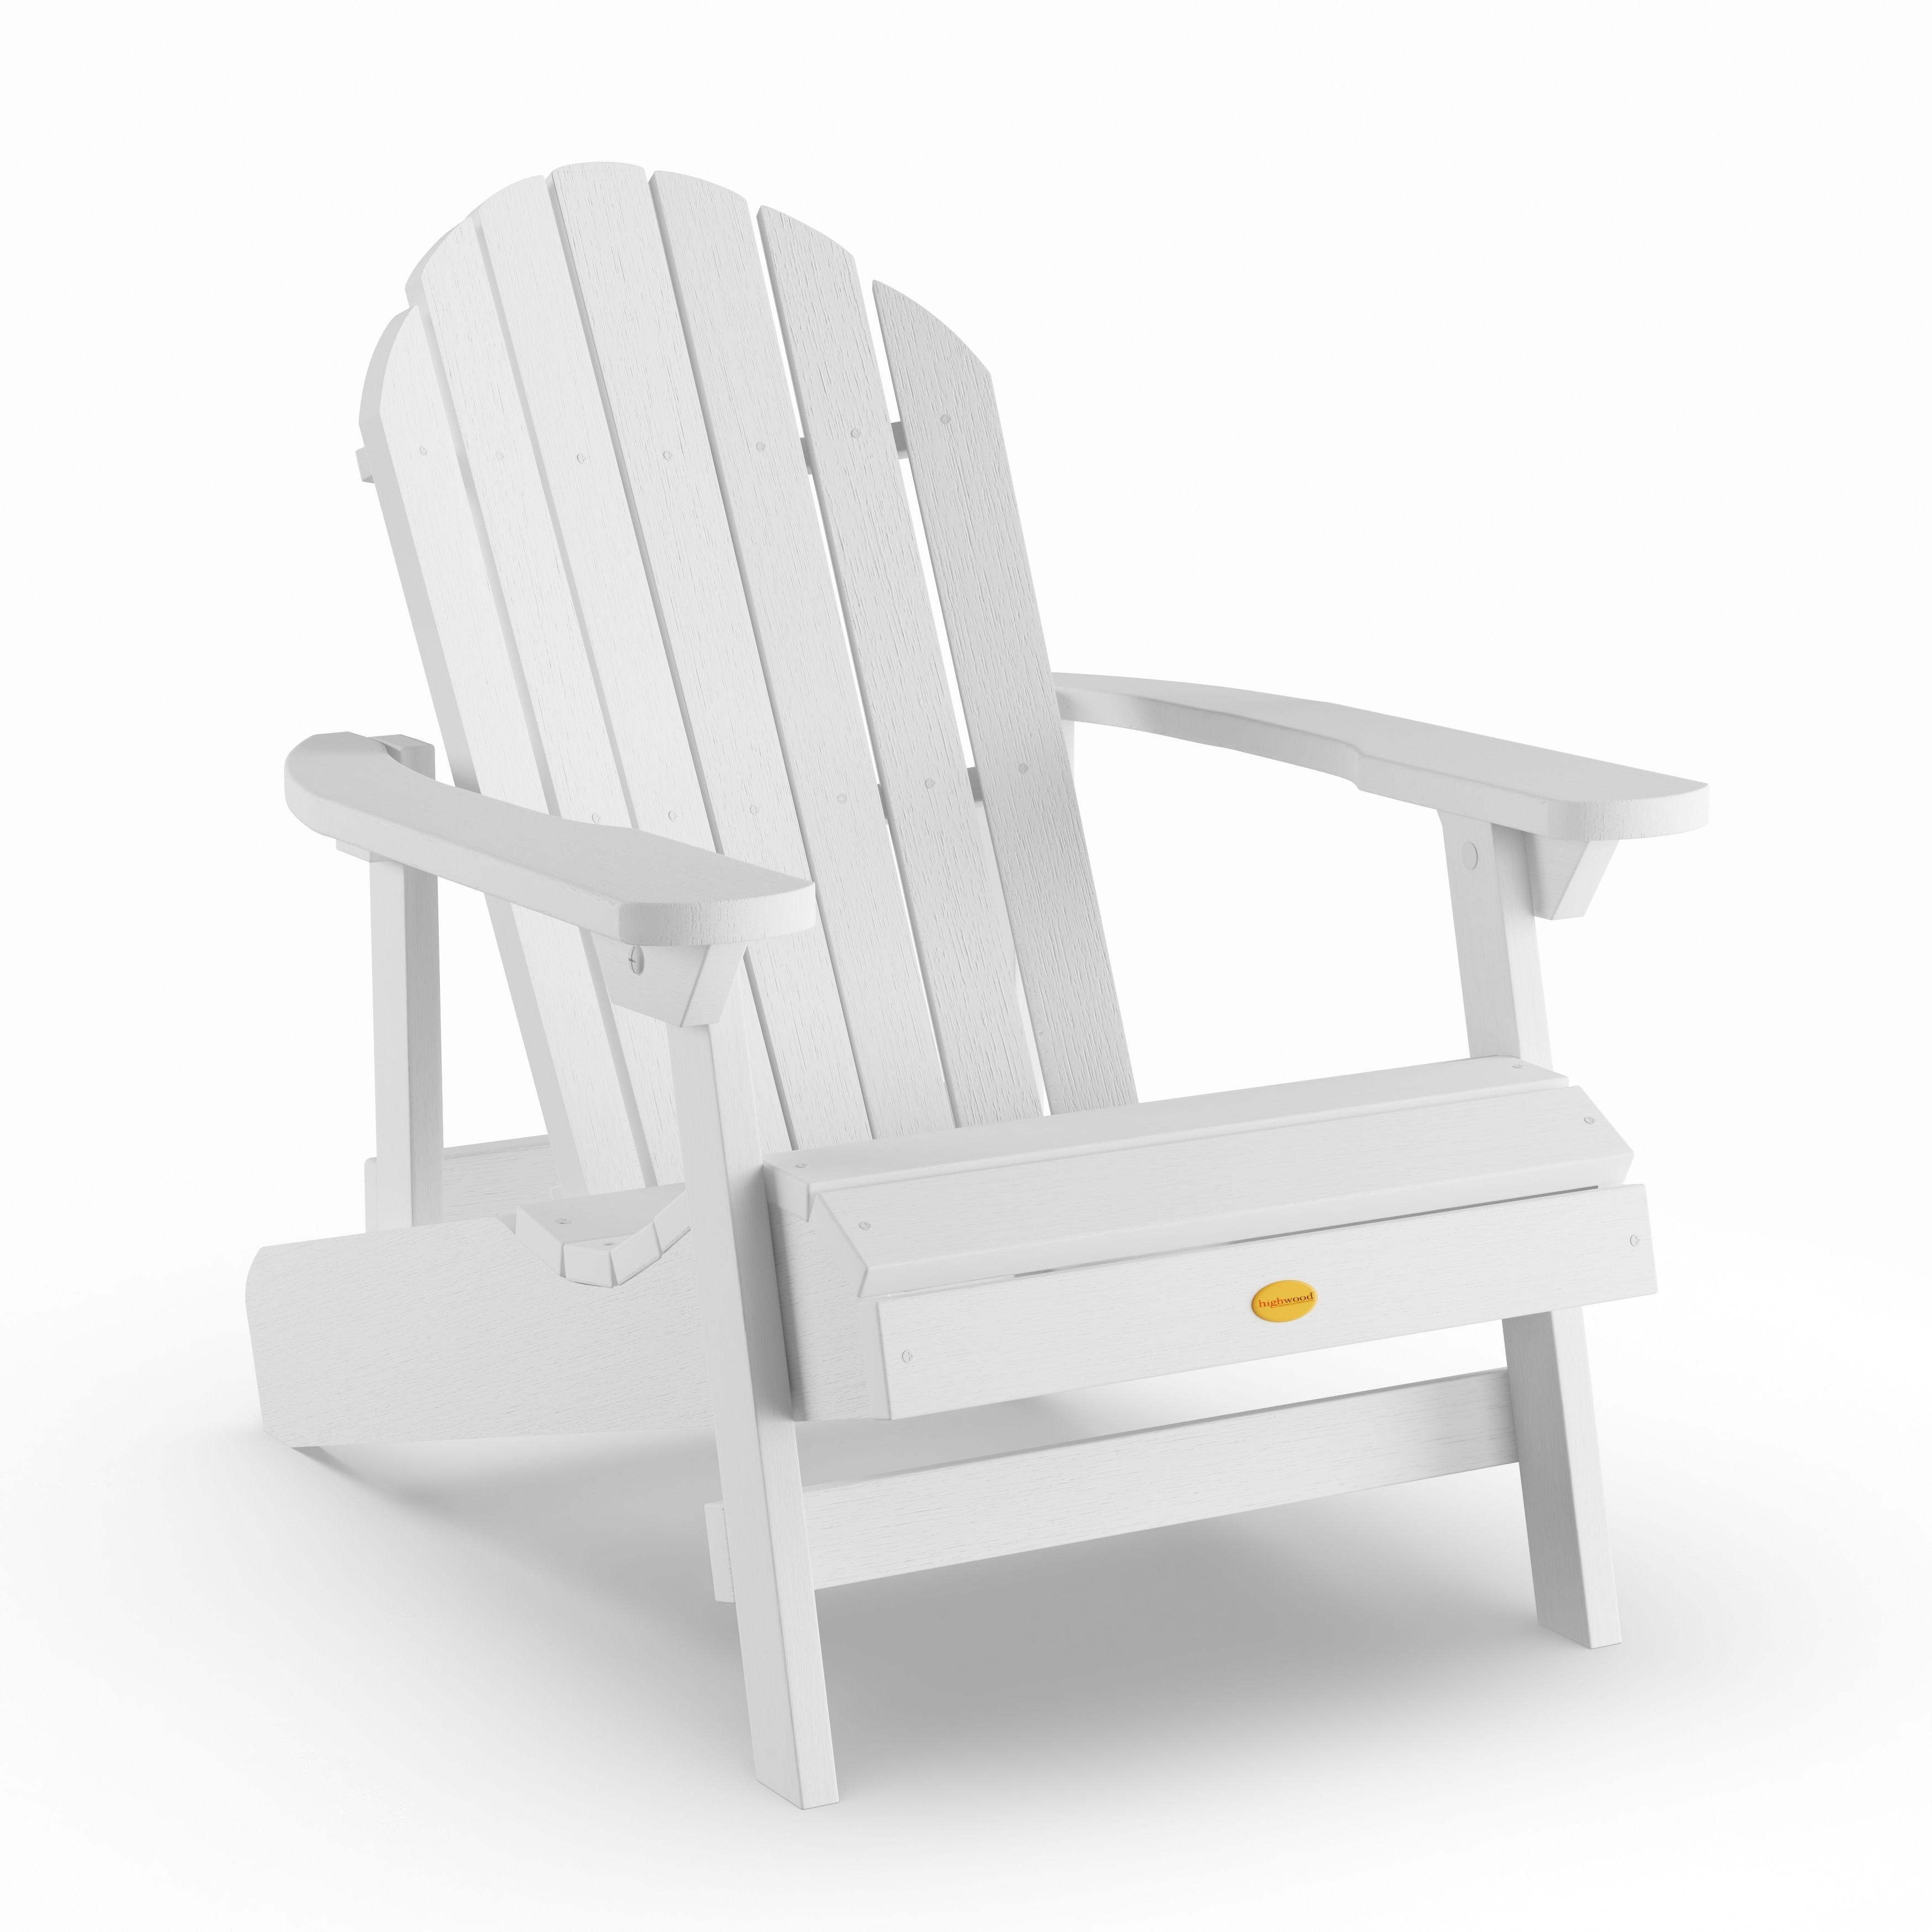 Sensational Oliver James Jacques Eco Friendly Synthetic Wood Folding Caraccident5 Cool Chair Designs And Ideas Caraccident5Info